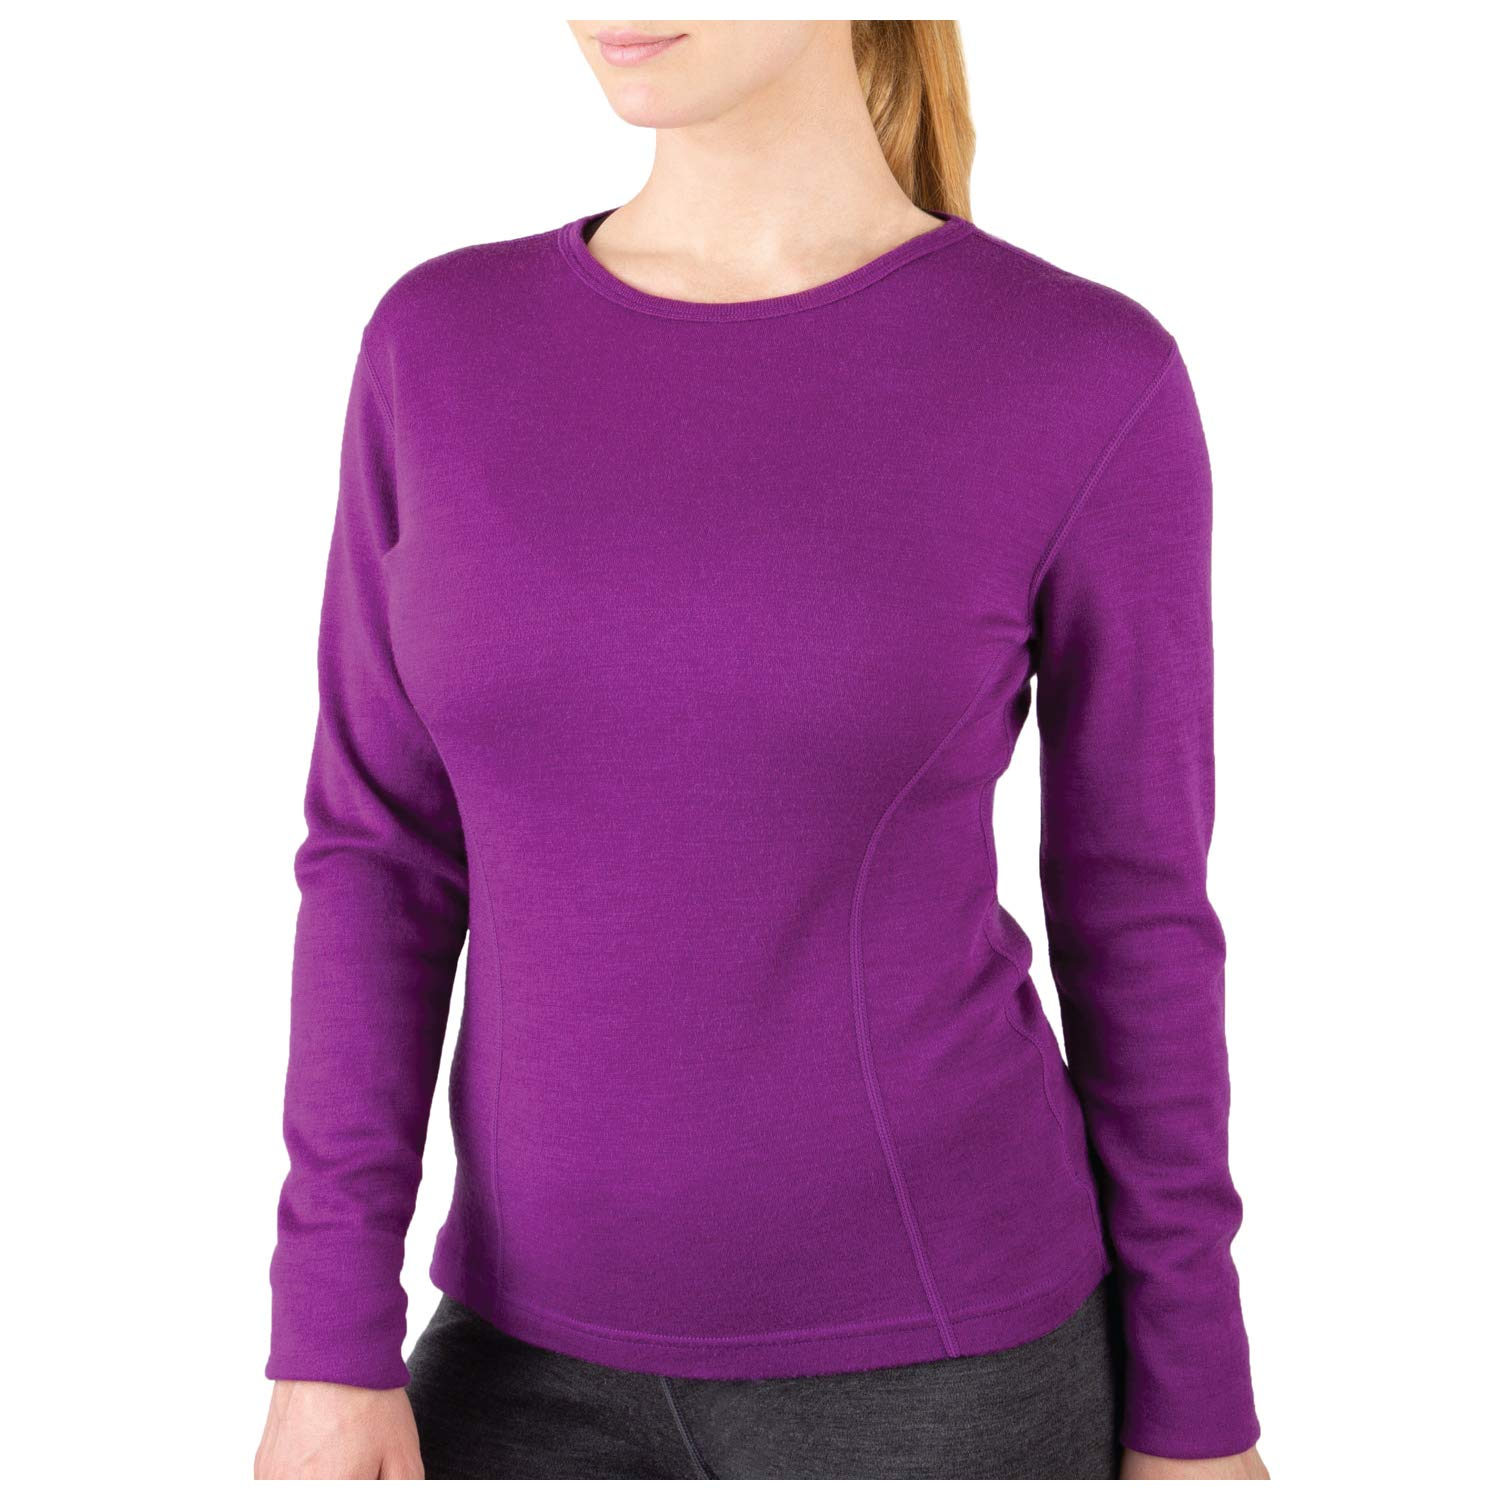 MERIWOOL Womens Base Layer 100% Merino Wool Midweight Long Sleeve Thermal Shirt by MERIWOOL